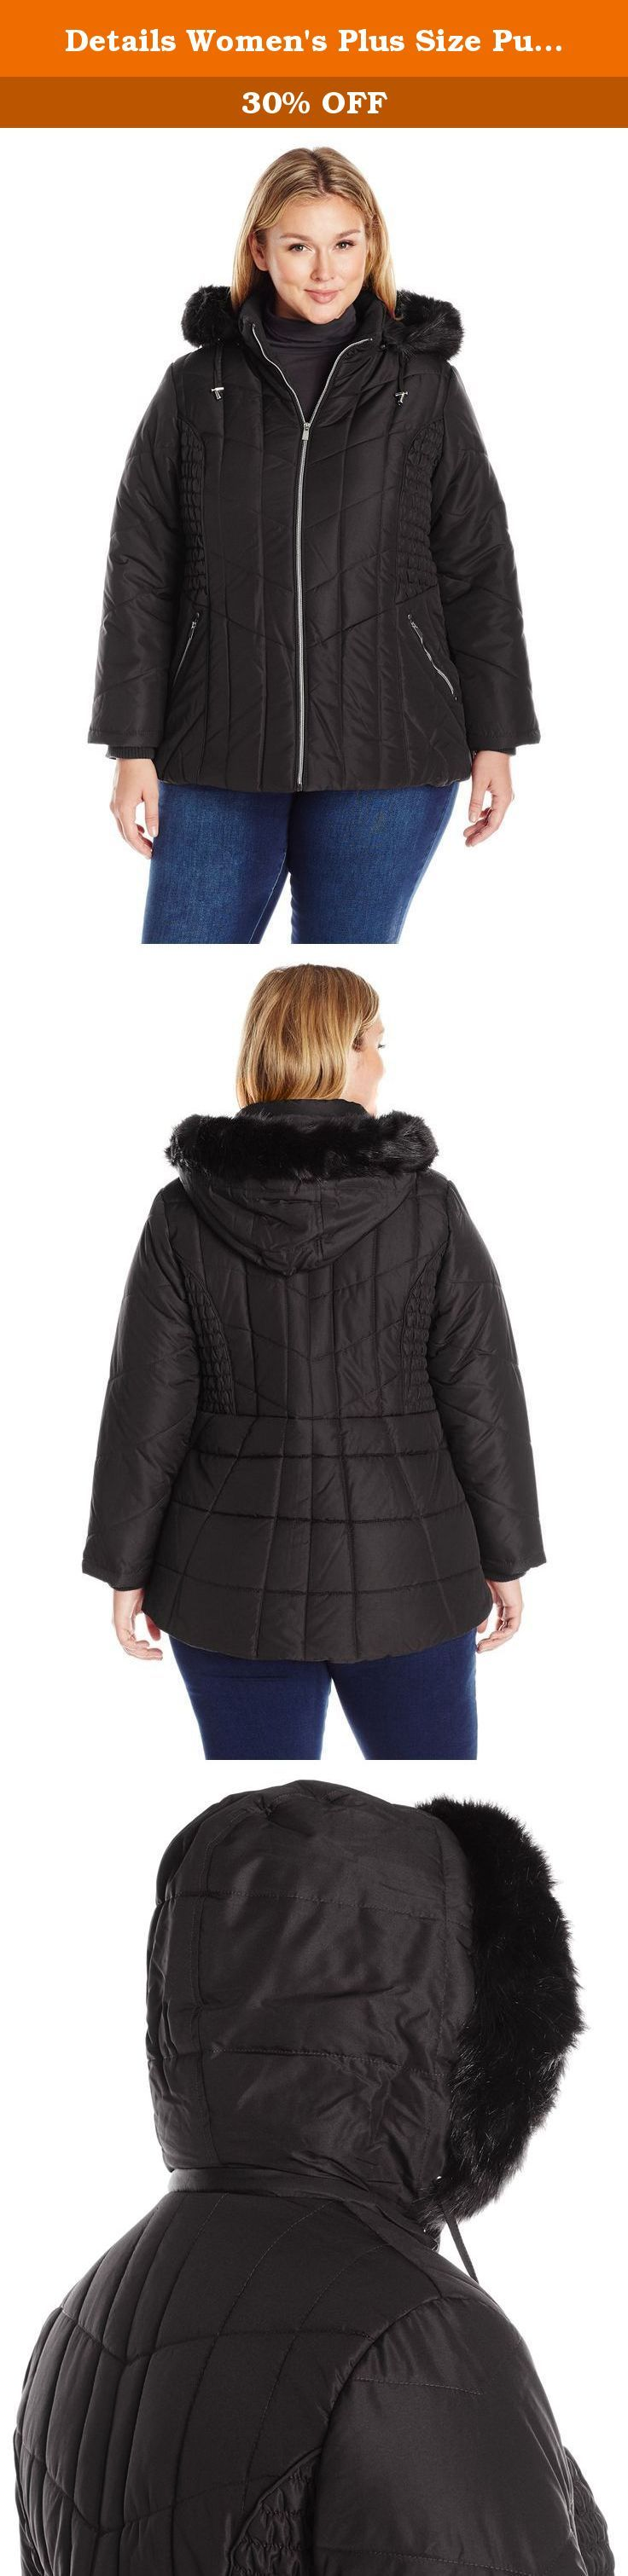 Details Women's Plus Size Puffer Coat with Braided Rouched Side, Black, 2X. This plus size D.Dresst.A.I.L.S. Puffer coat has a soft fabric feel and flattering shape with the braiding and rouching at the sides. Even the way the lines are quilted provides an overall good look to the wearer. Zippers at pockets for added security. 32 inch.